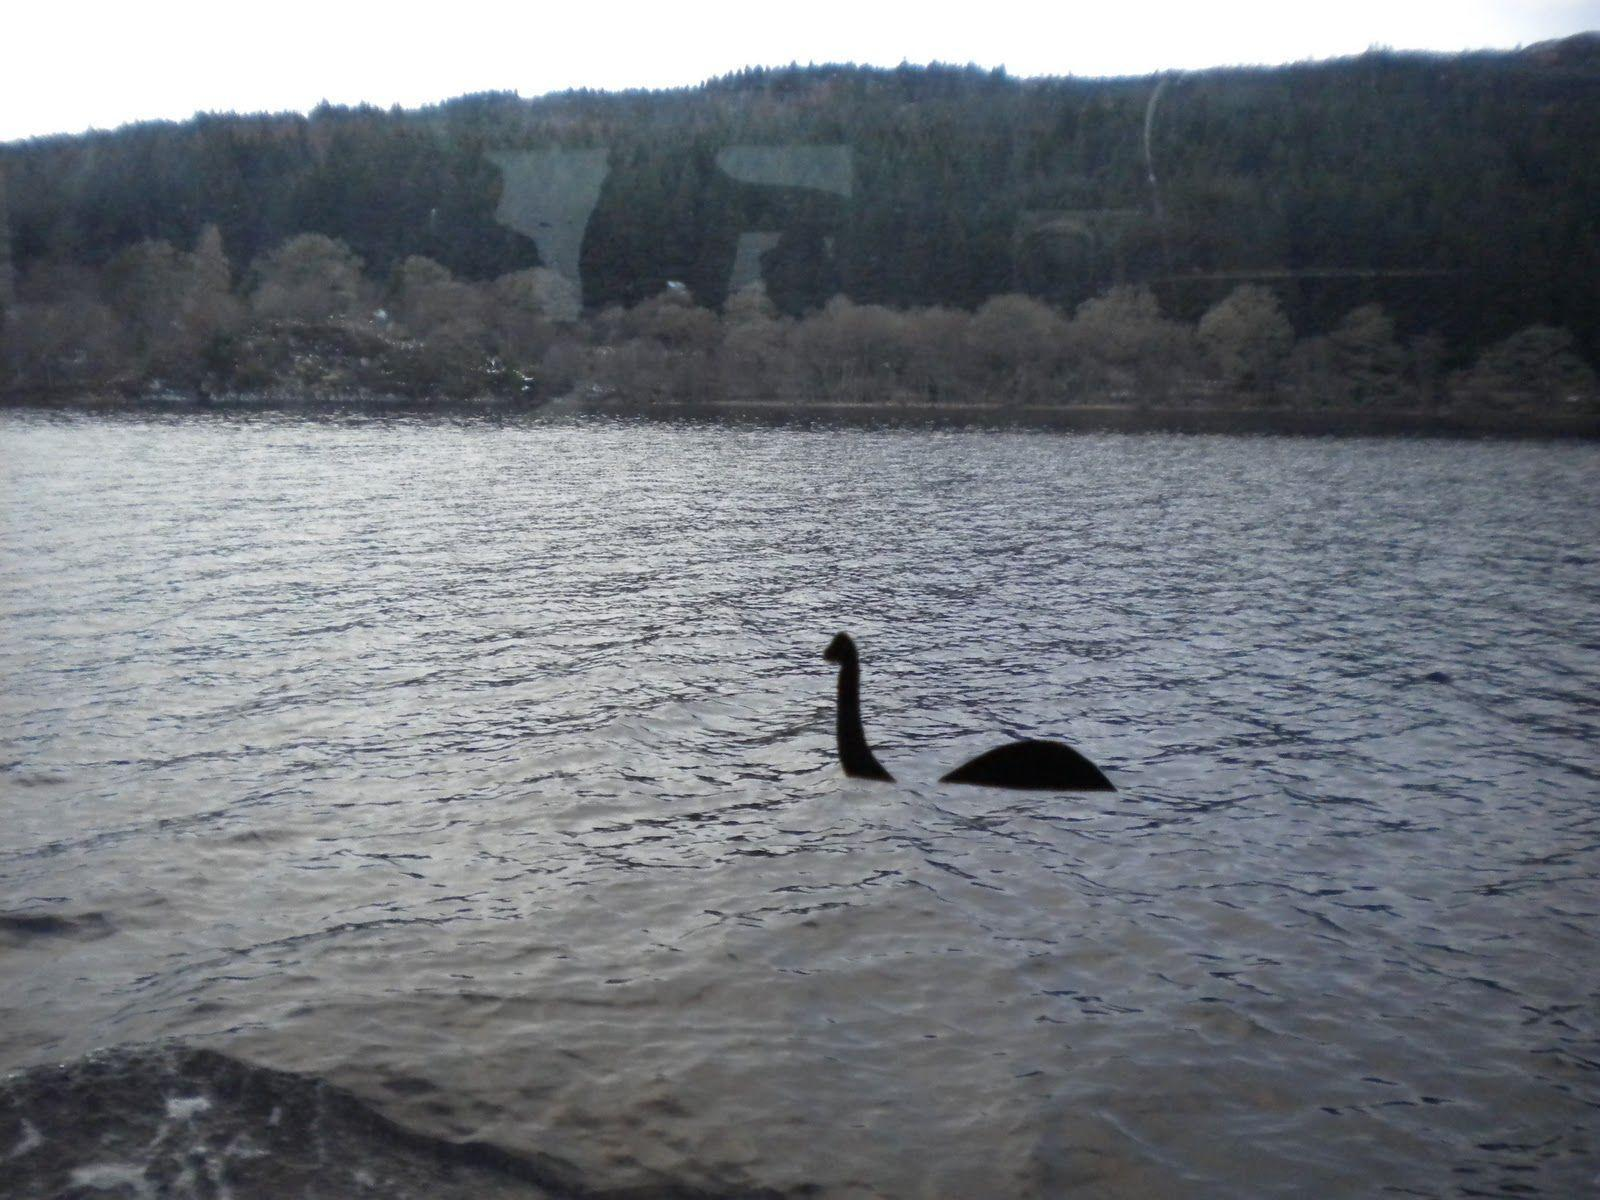 Loch Ness Monster Wallpapers - Wallpaper Cave